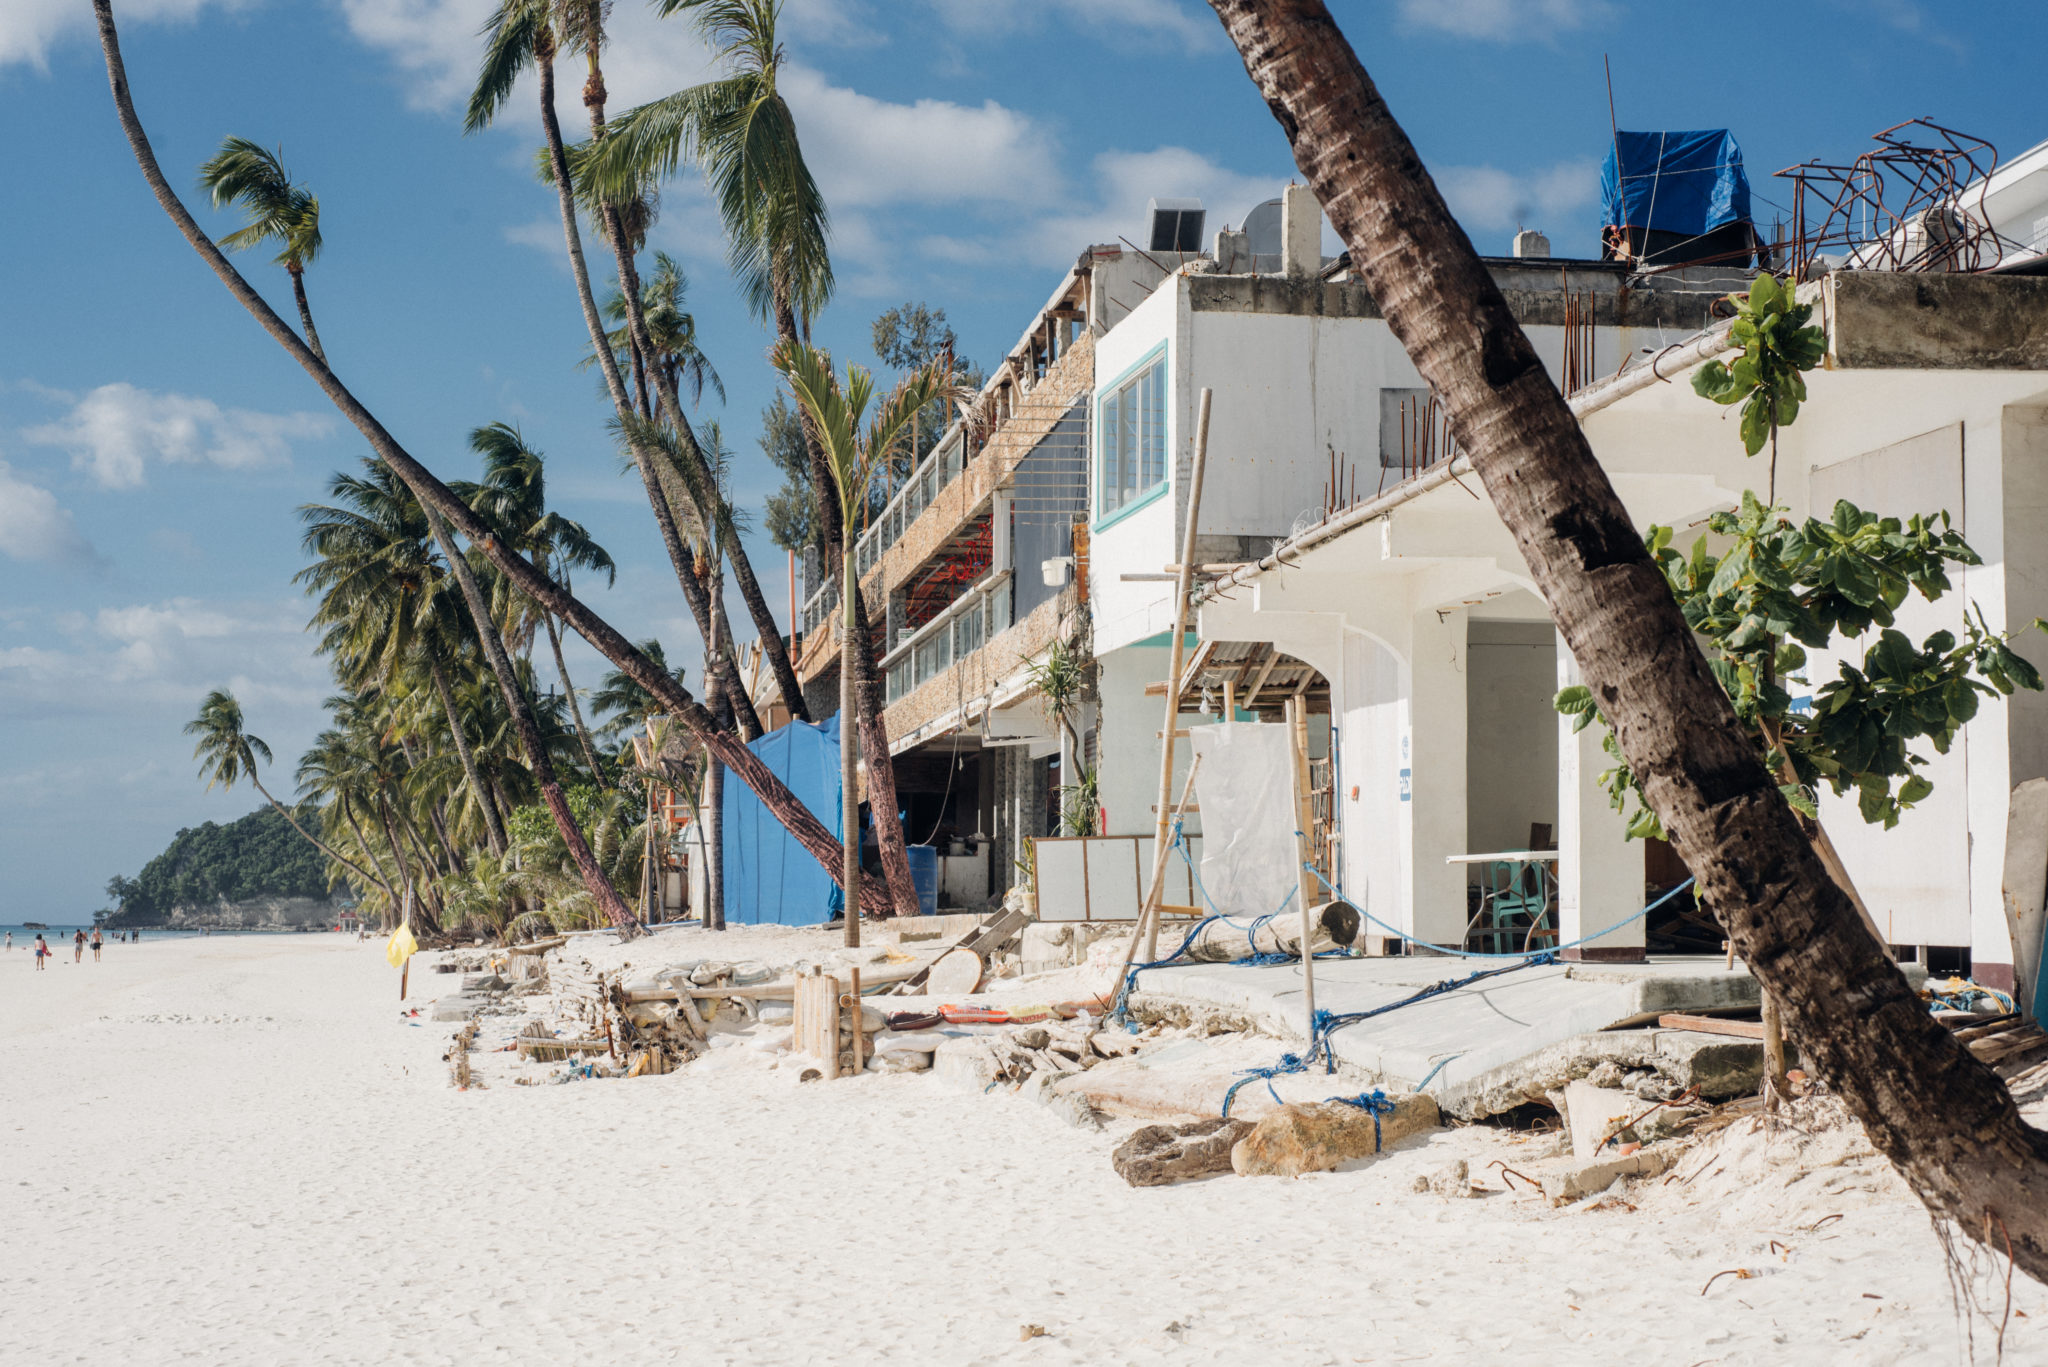 A look into Boracay's journey through and after its closure and rehabilitation